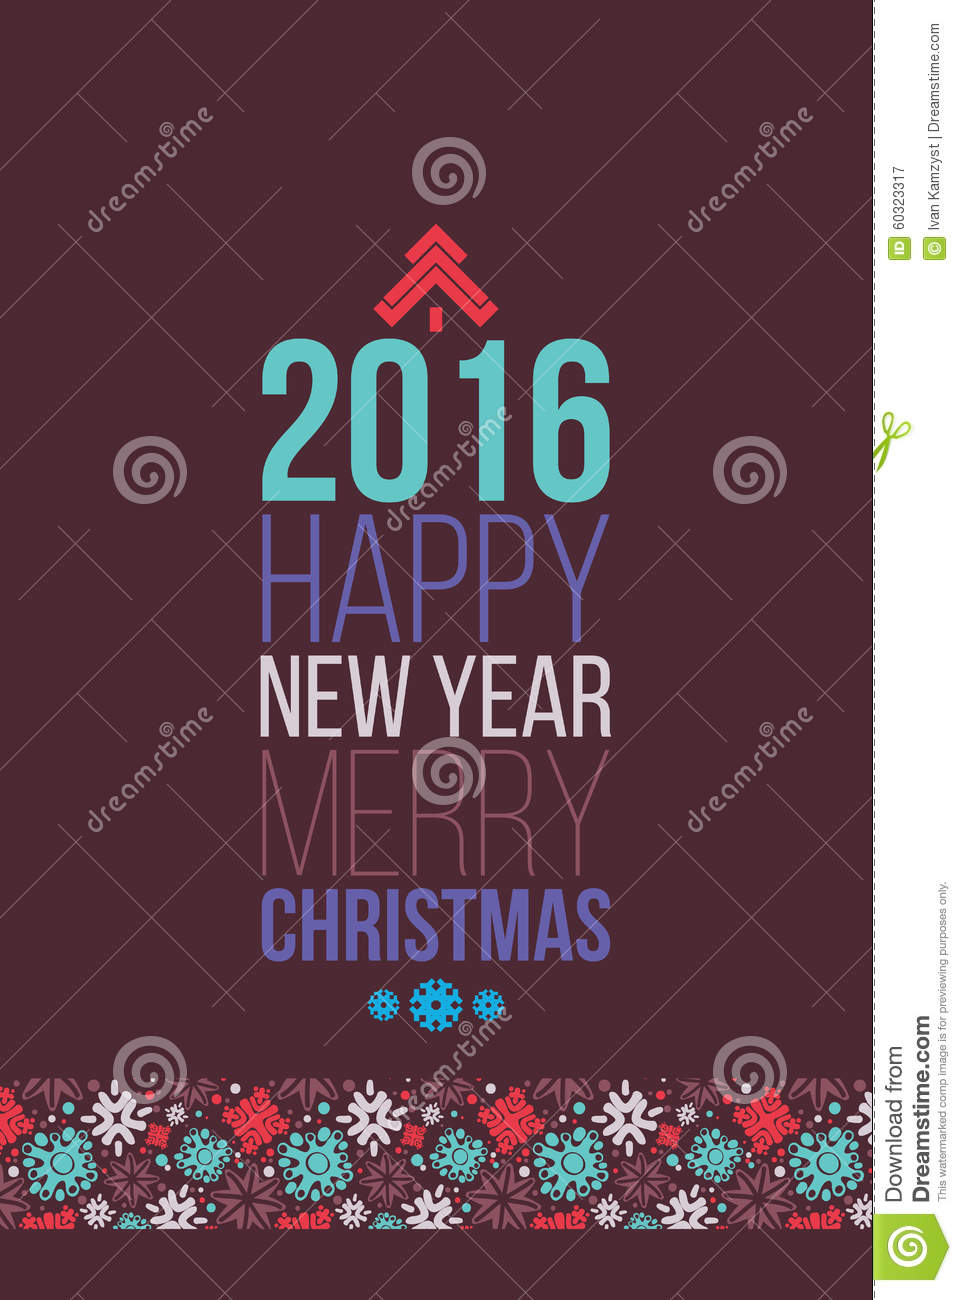 Merry Christmas And Happy New Year 2016 Poster Stock Vector     Merry Christmas and Happy New Year 2016 Poster